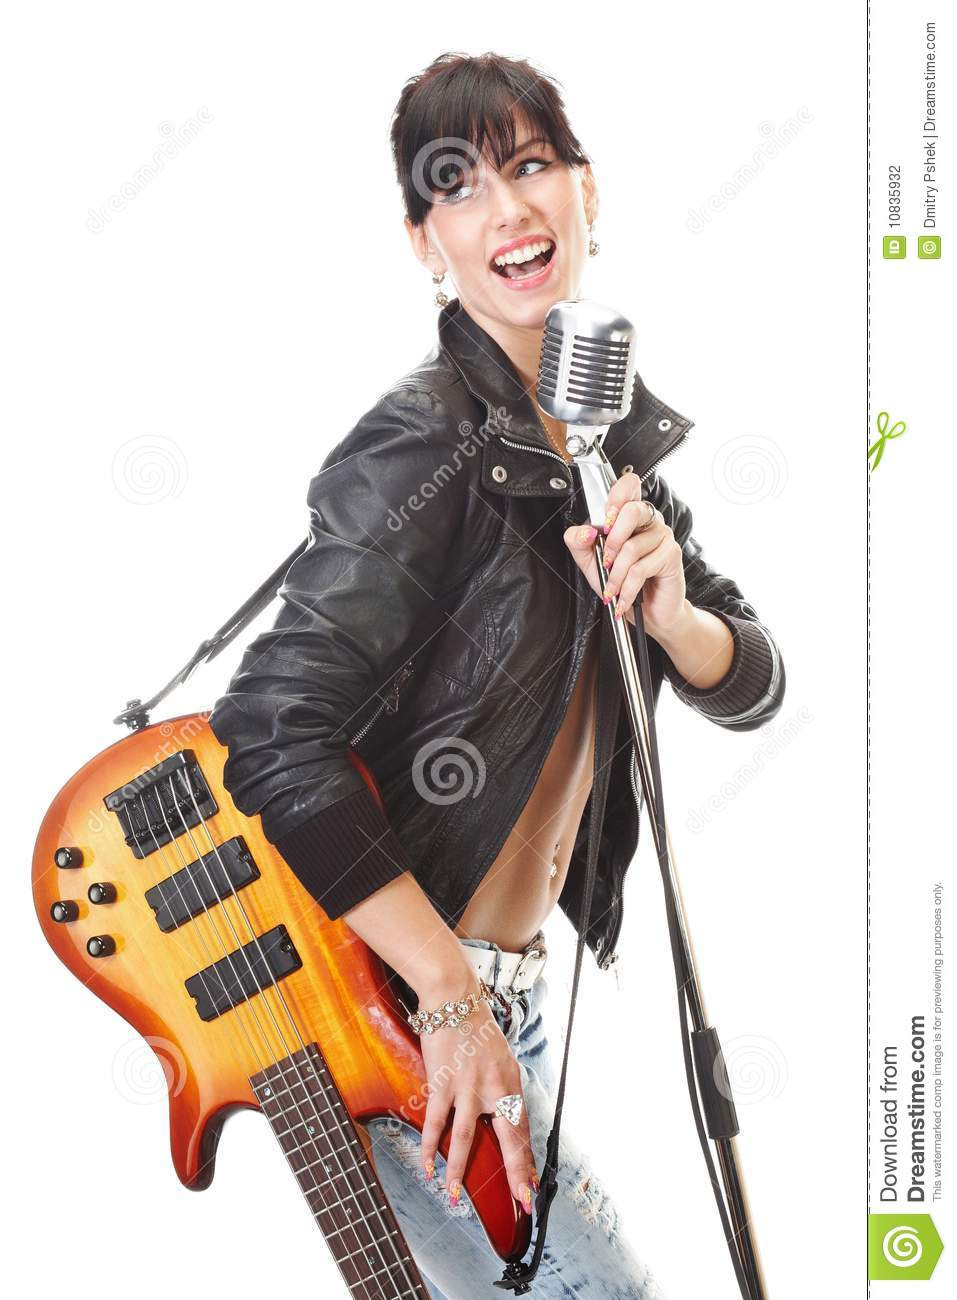 Rock-n-roll girl holding a guitar singing into ret